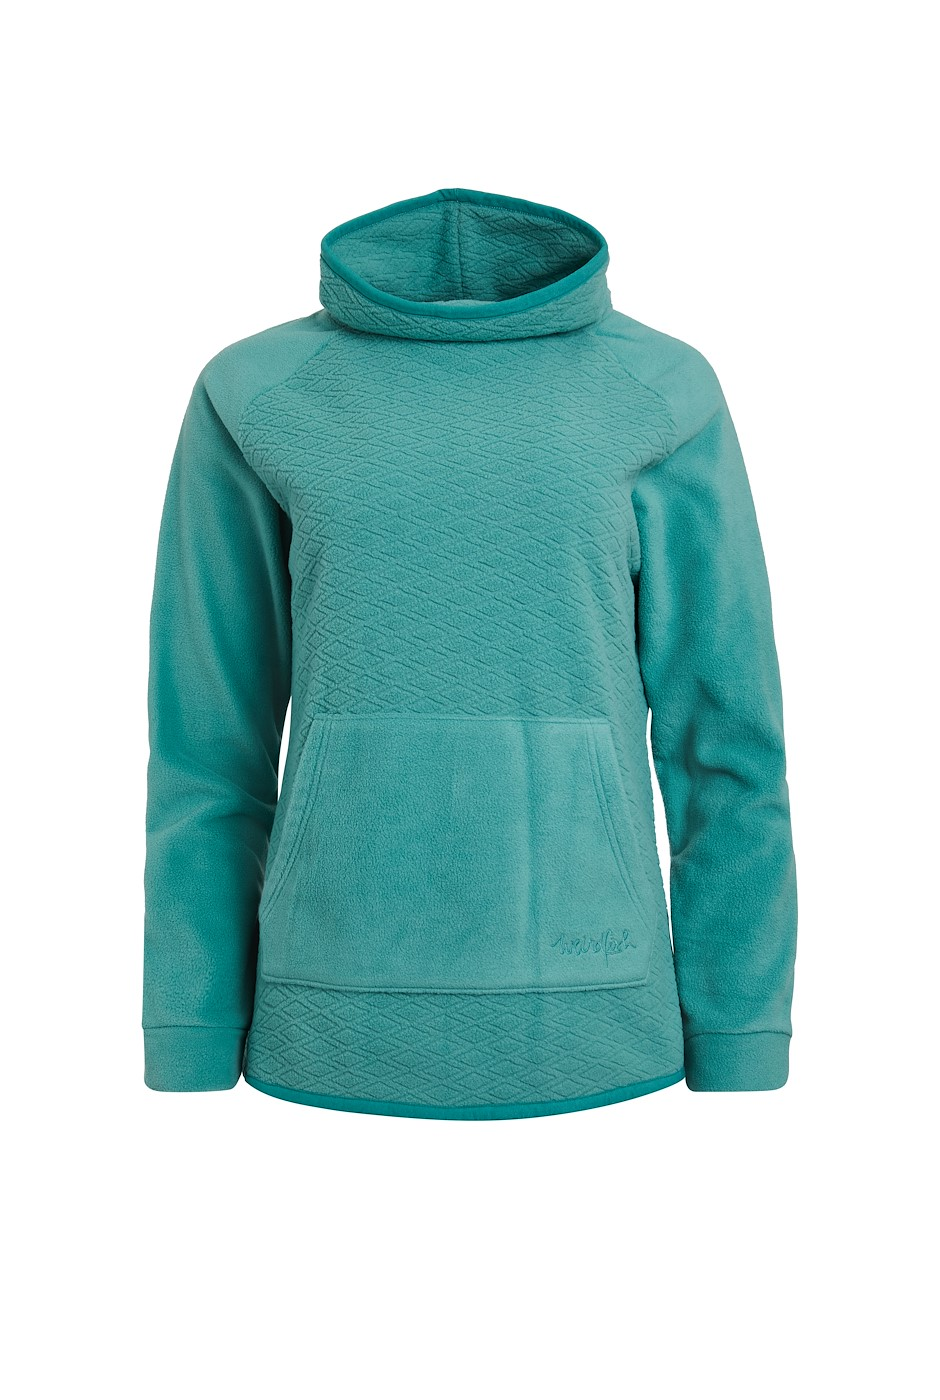 Sallca Recycled Polyester Micro Fleece Washed Teal